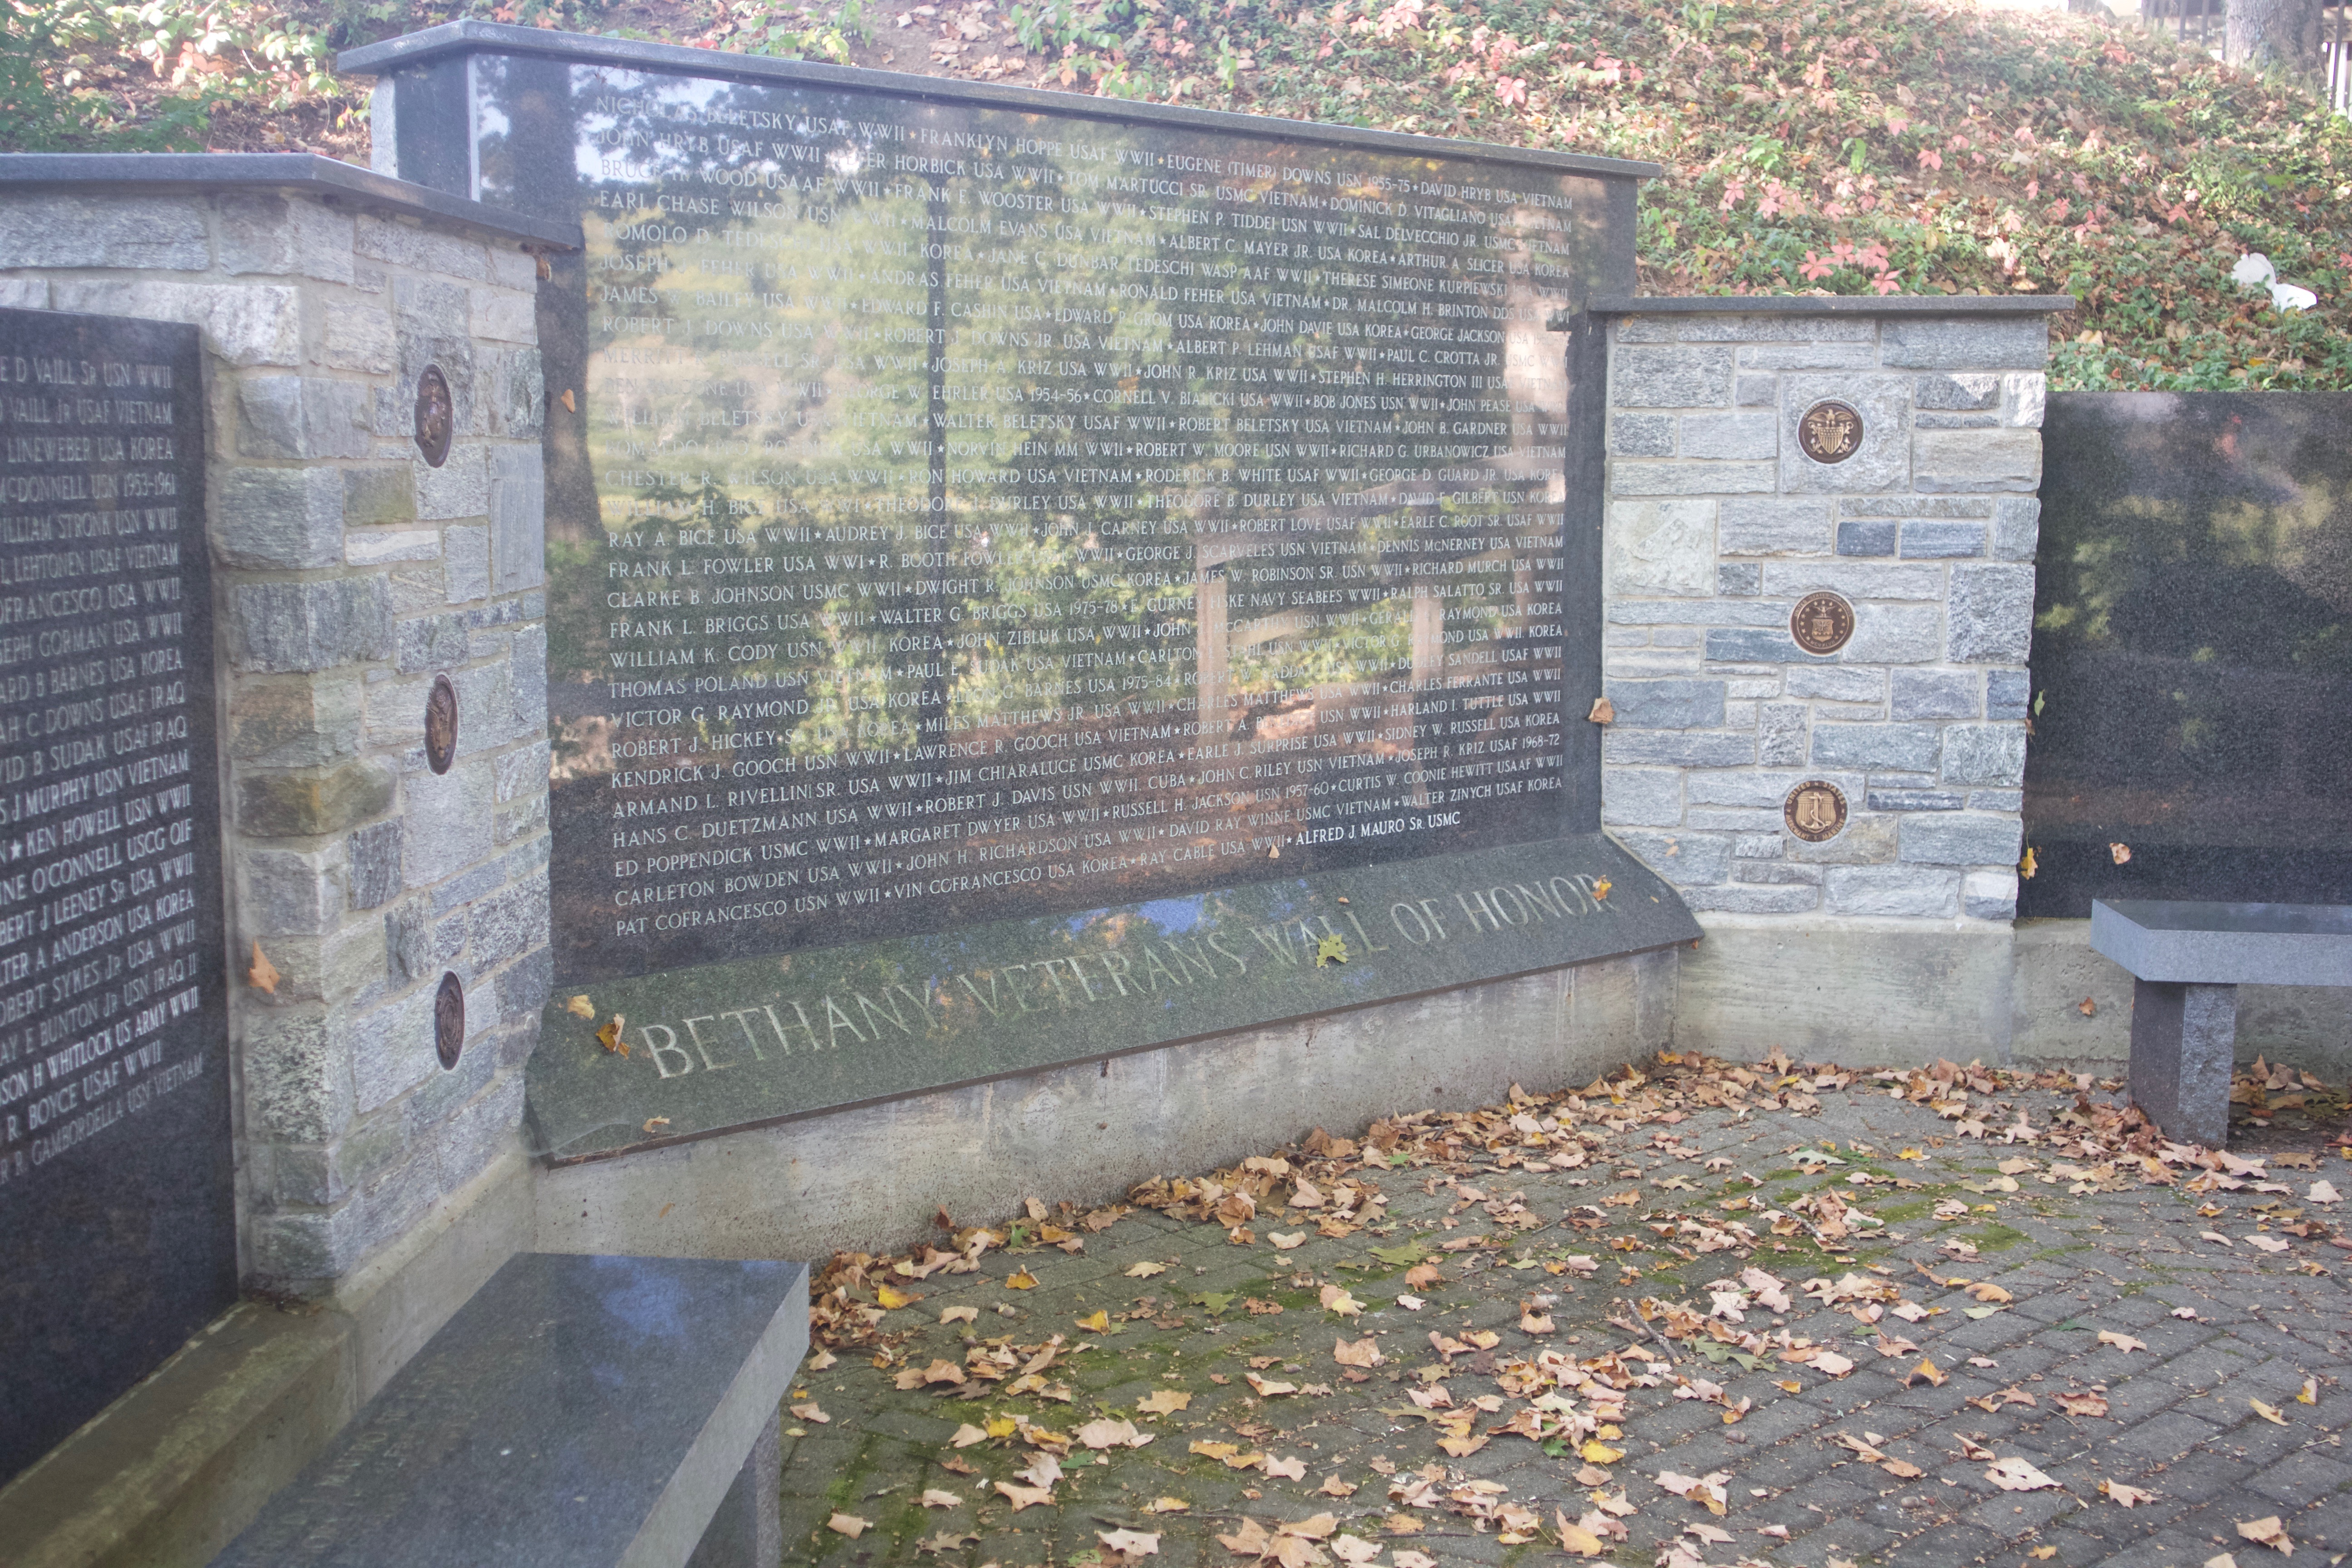 Bethany monuments honor WWI service